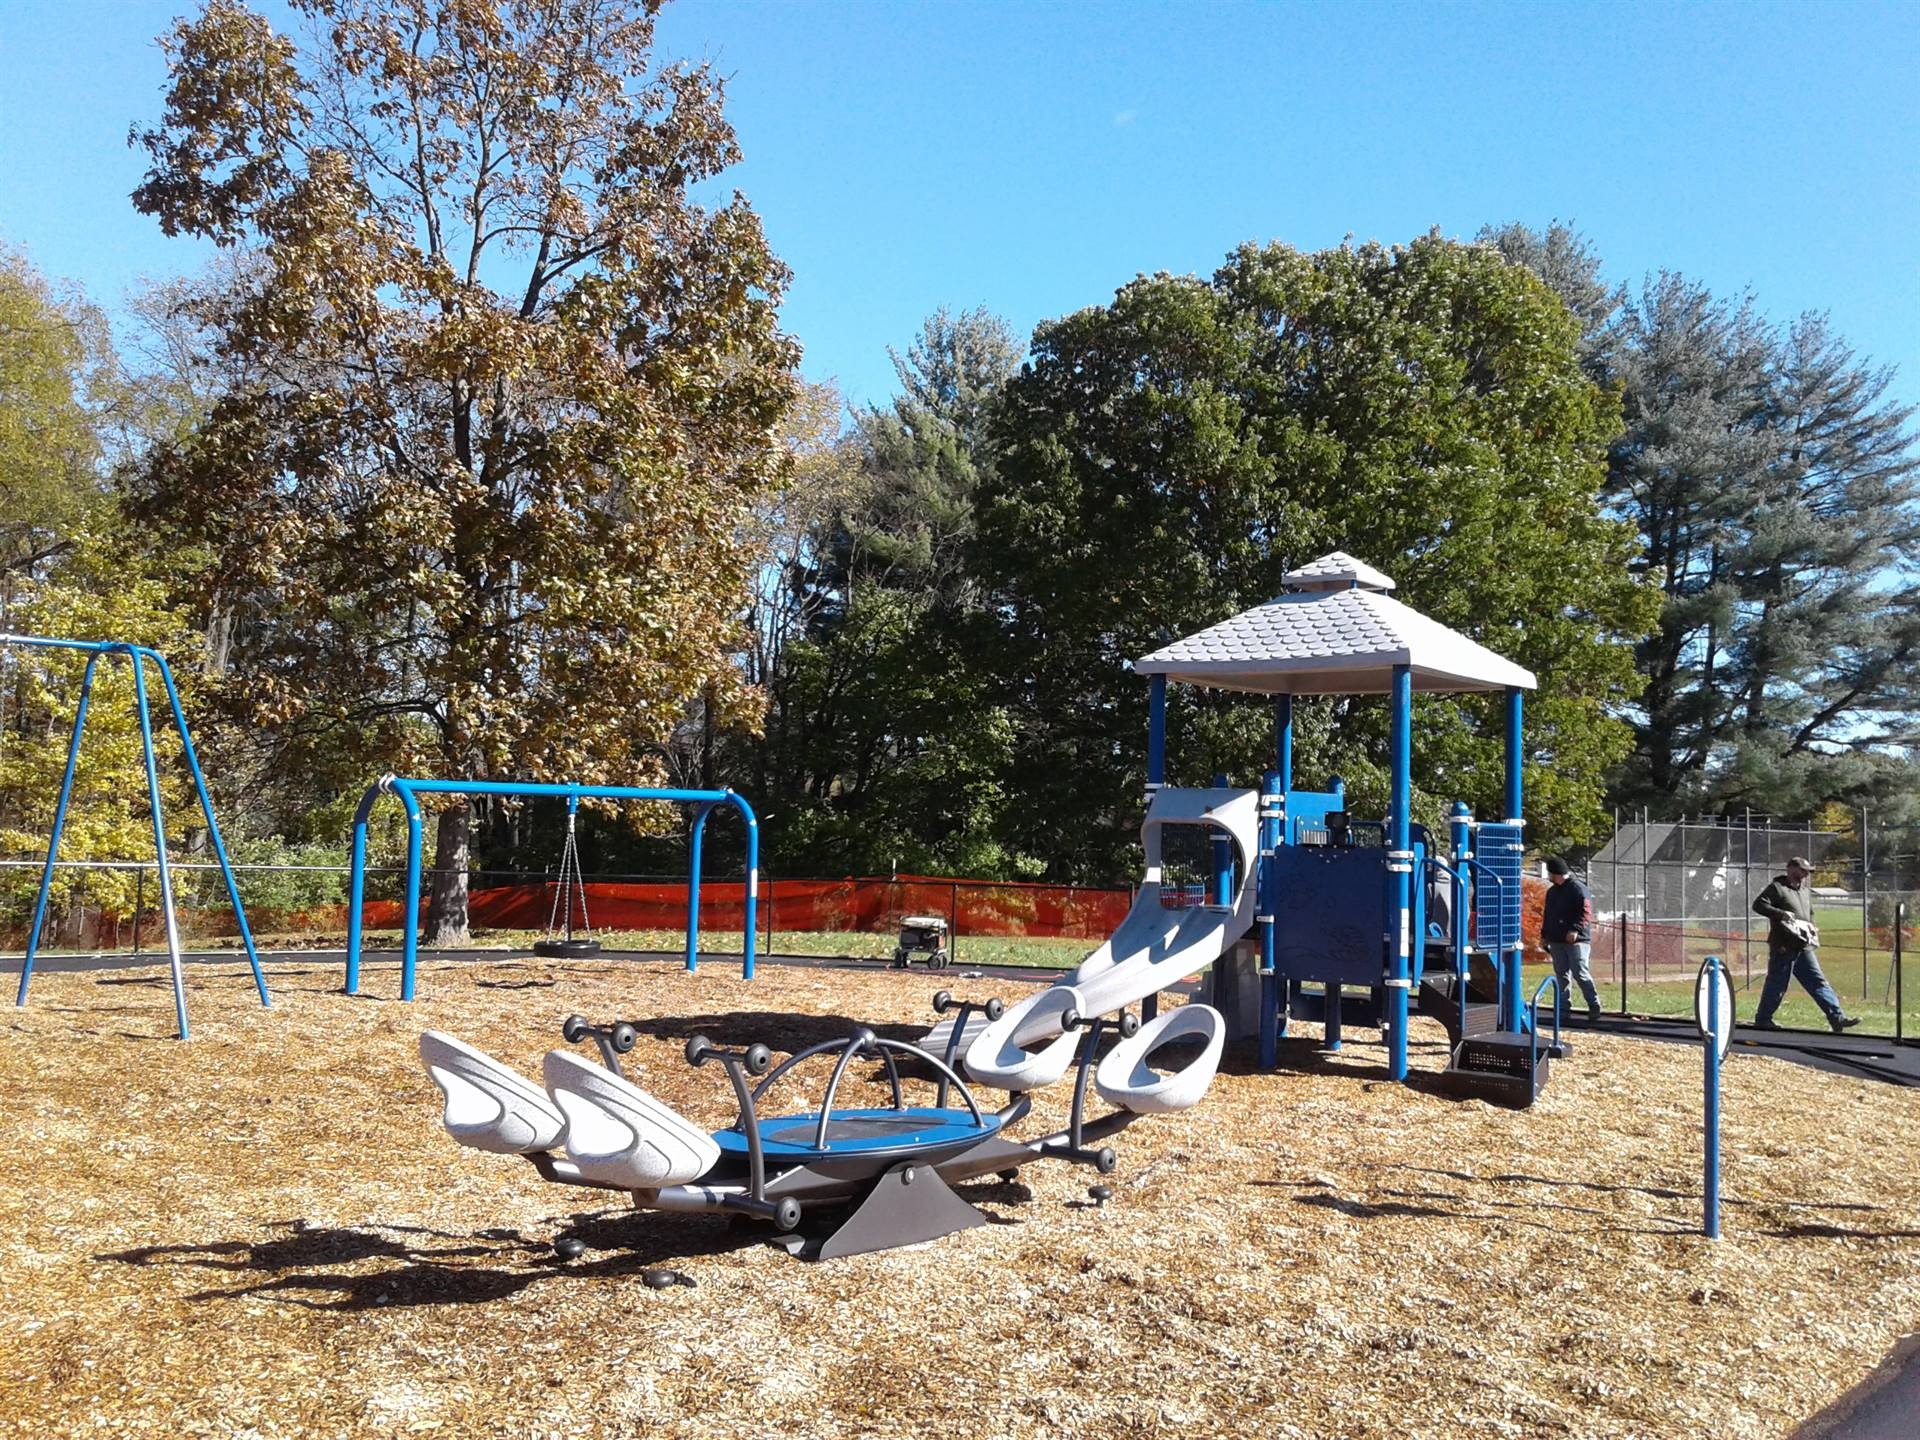 New Greenlawn Playground - Climbing apparatus